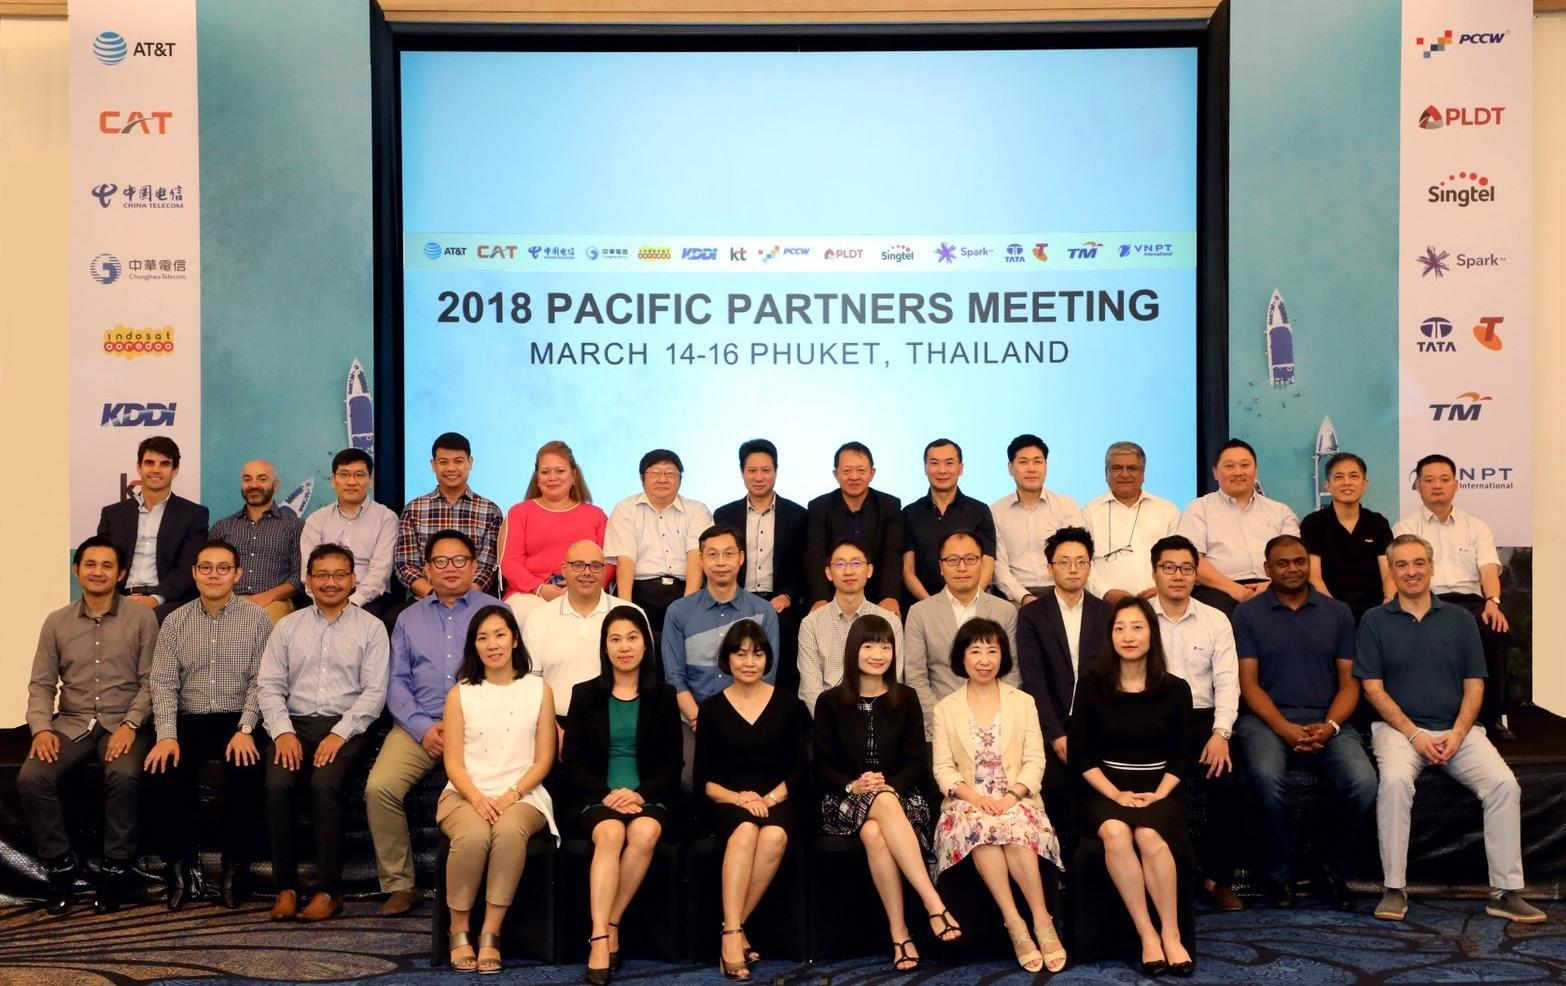 CAT Telecom holds meeting on mega projects to develop business and boost credibility at international level with participation of leading telecommunication operators across Asia Pacific